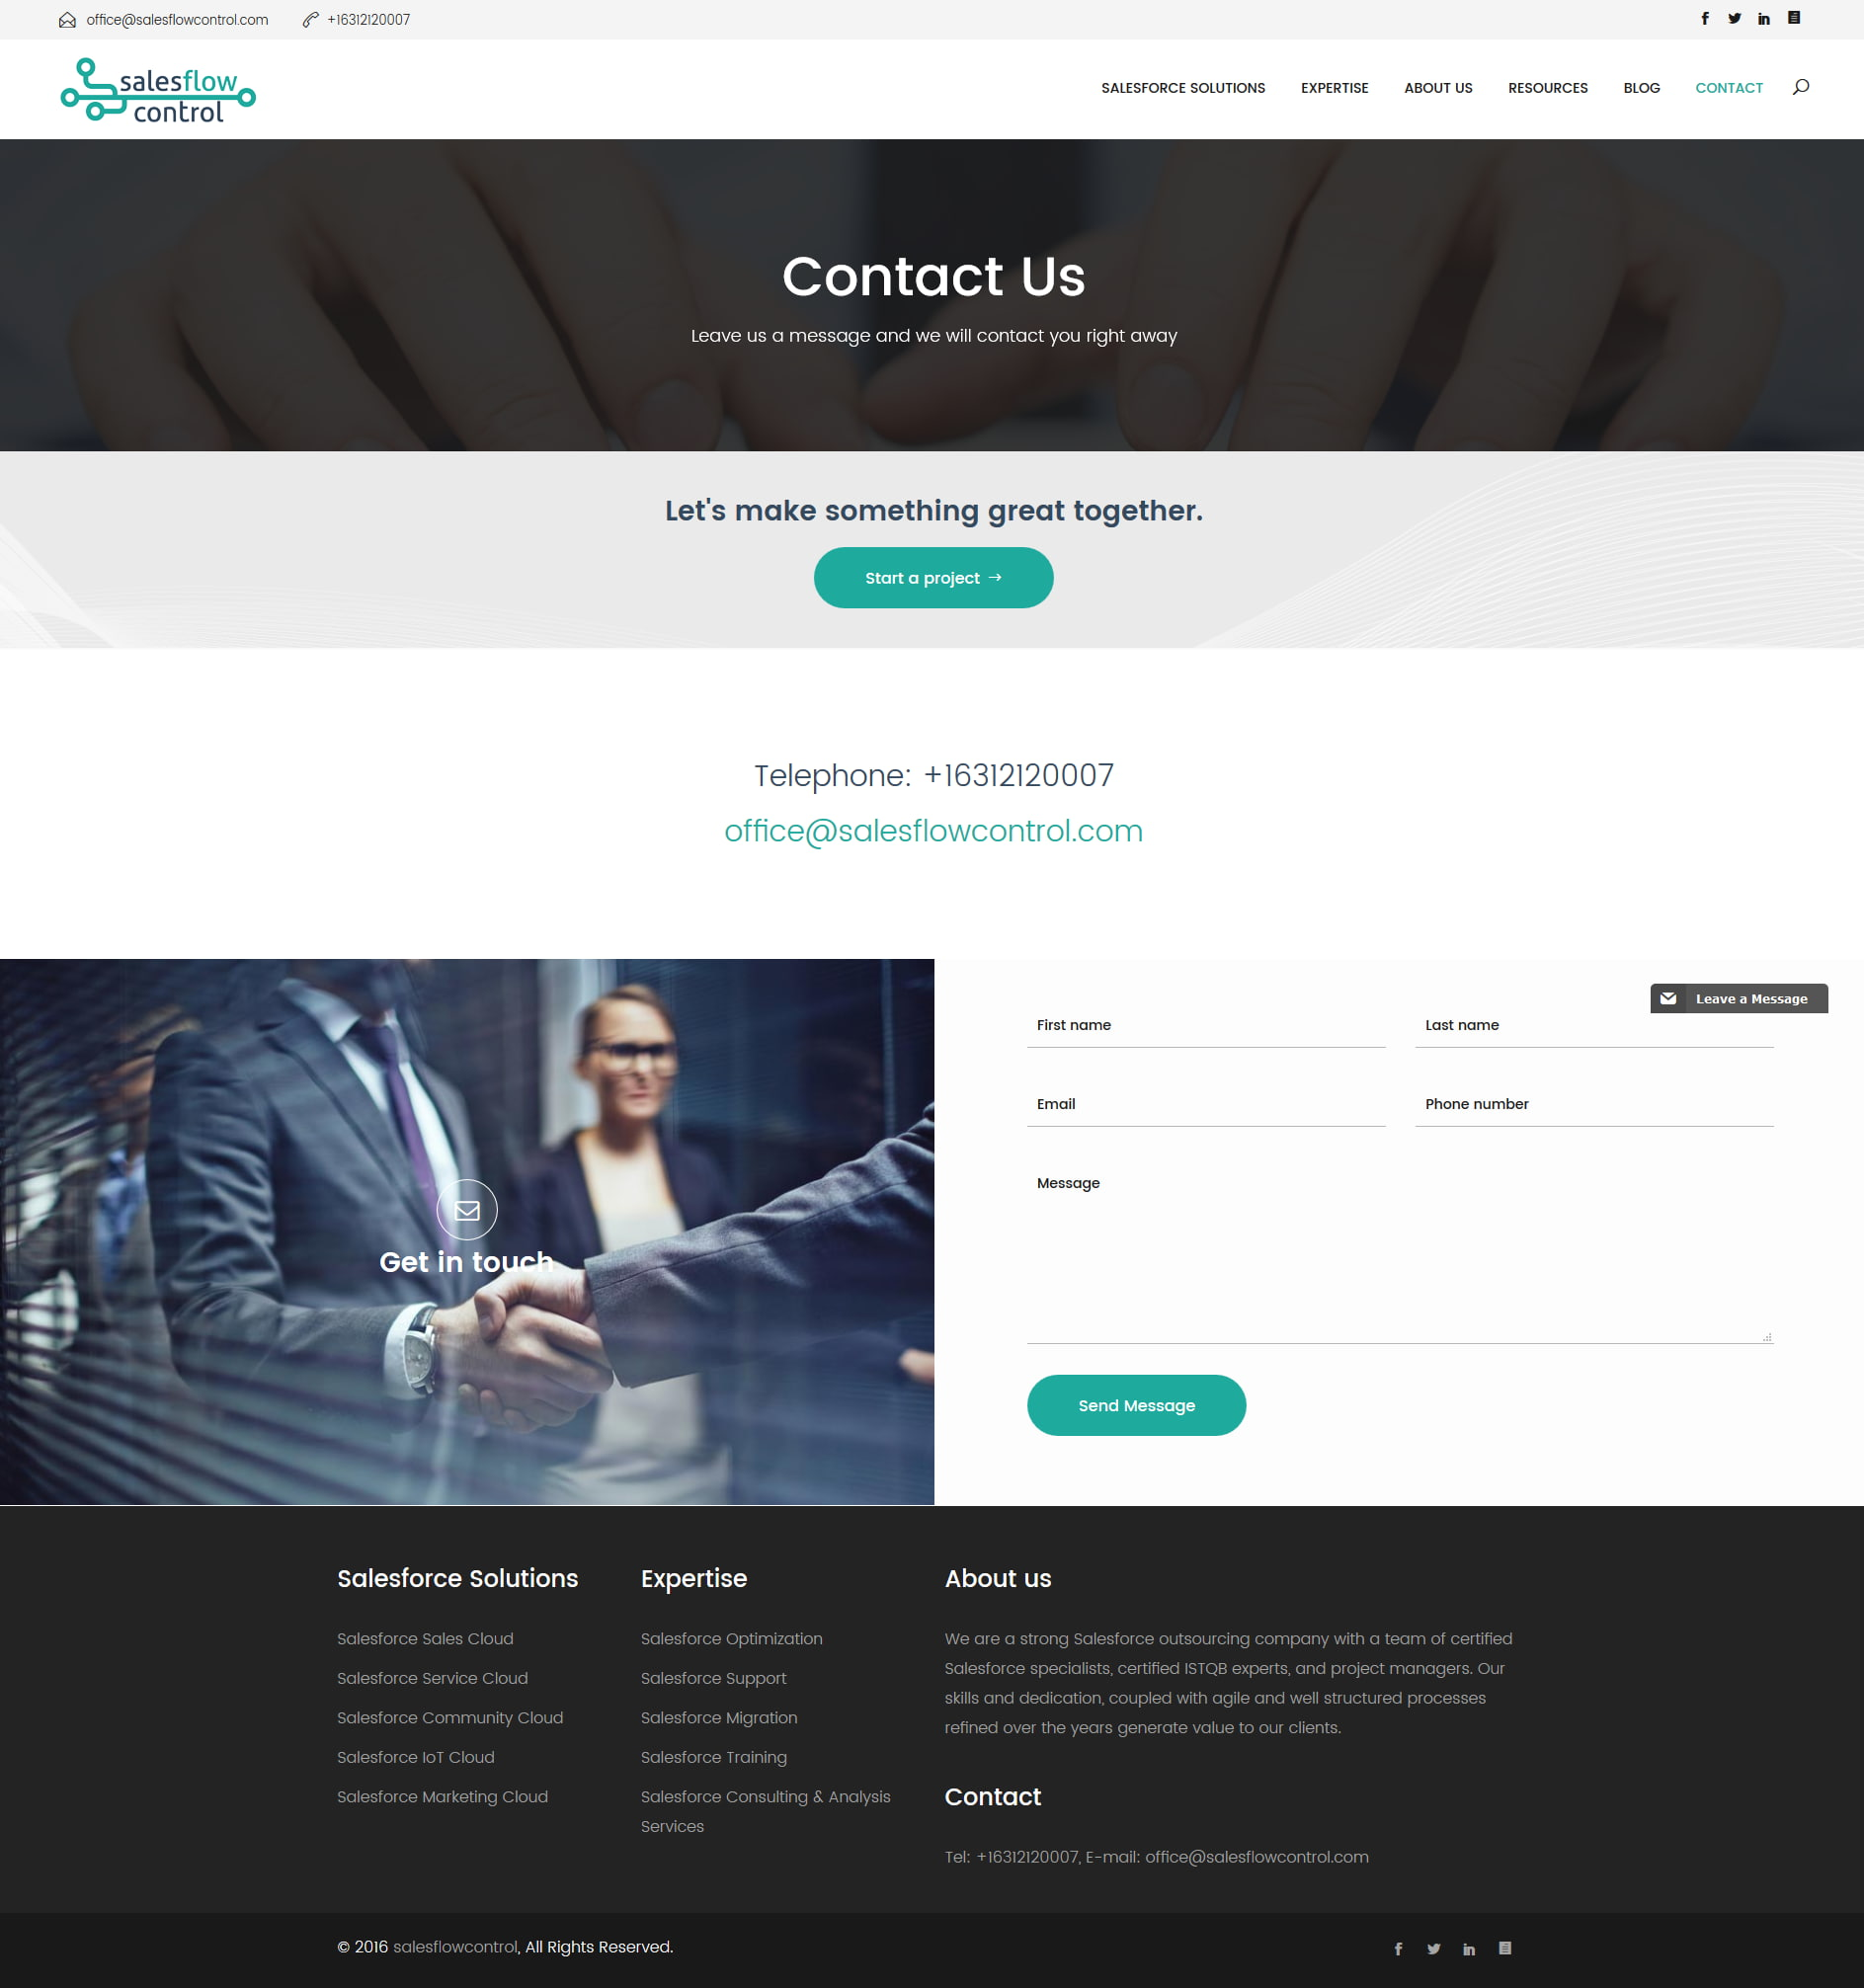 Salesflowcontrol_Contact